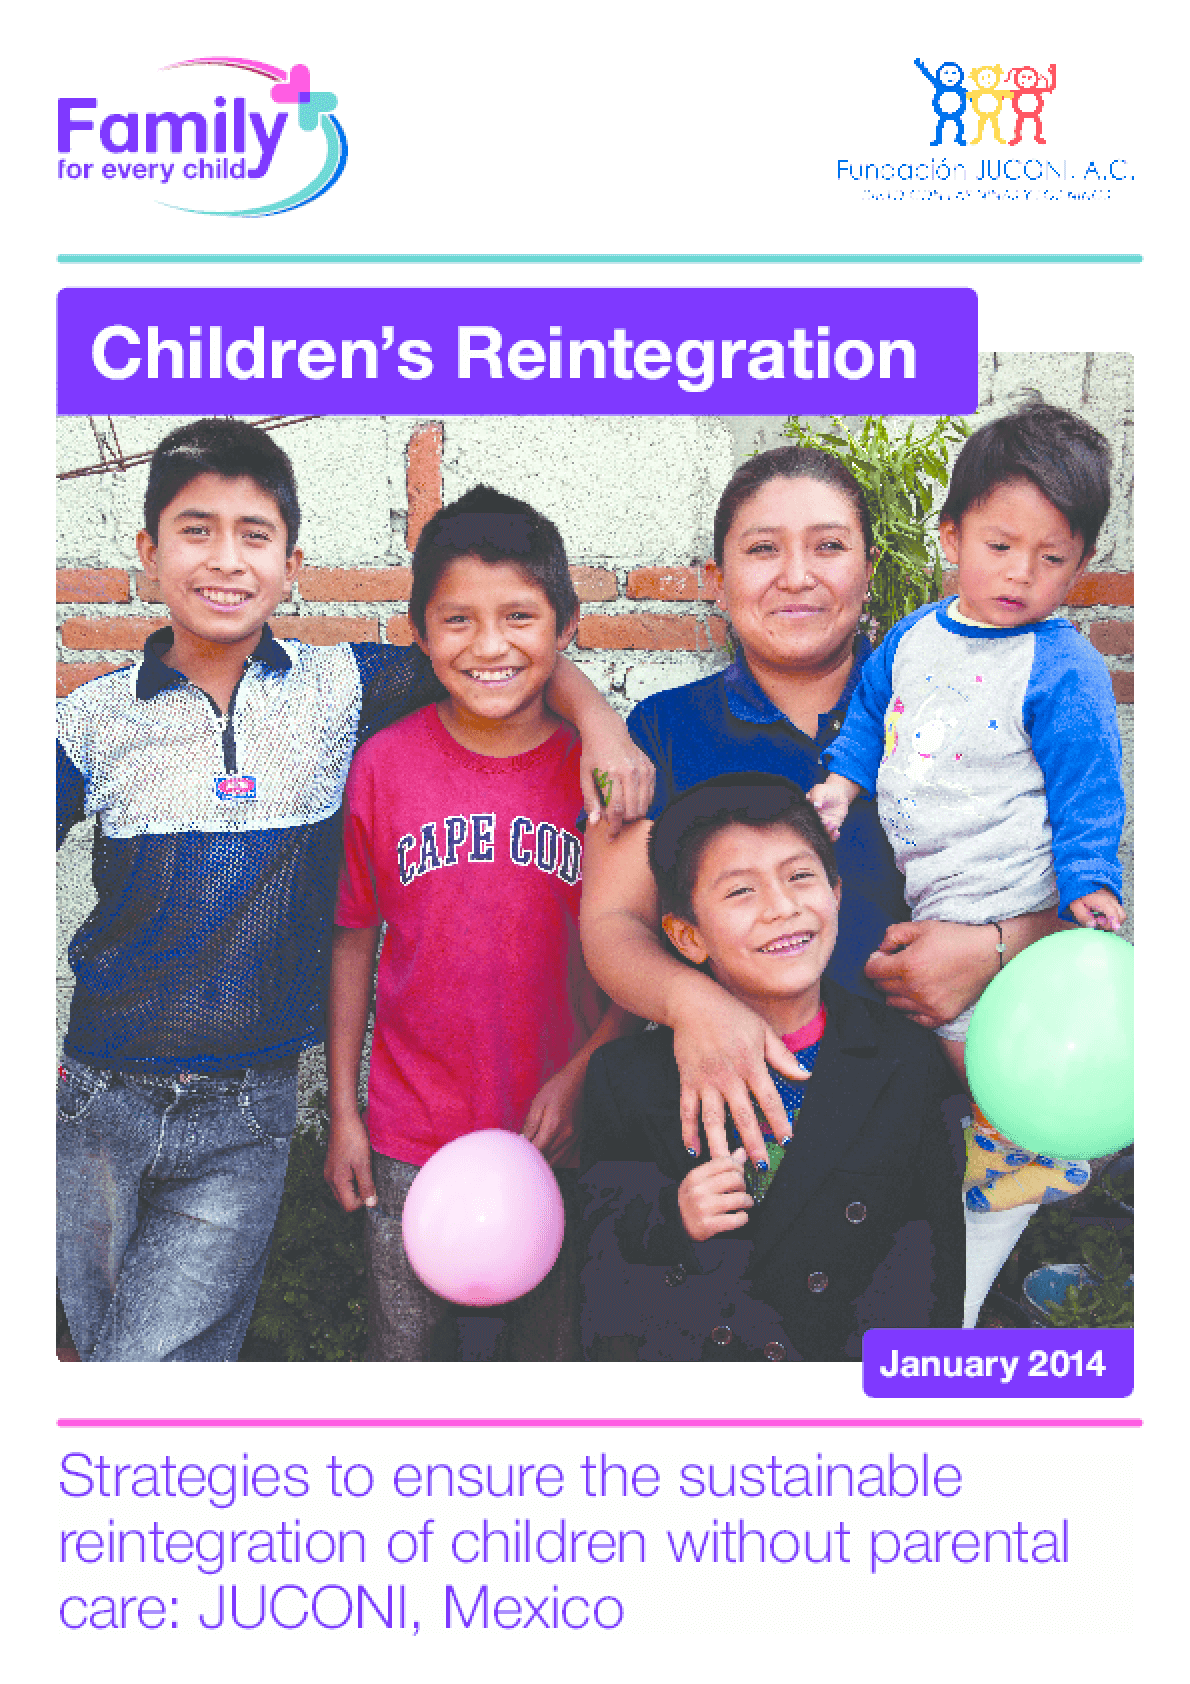 Children's Reintegration: Strategies to Ensure the Sustainable Reintegration of Children Without Parental Care - JUCONI, Mexico